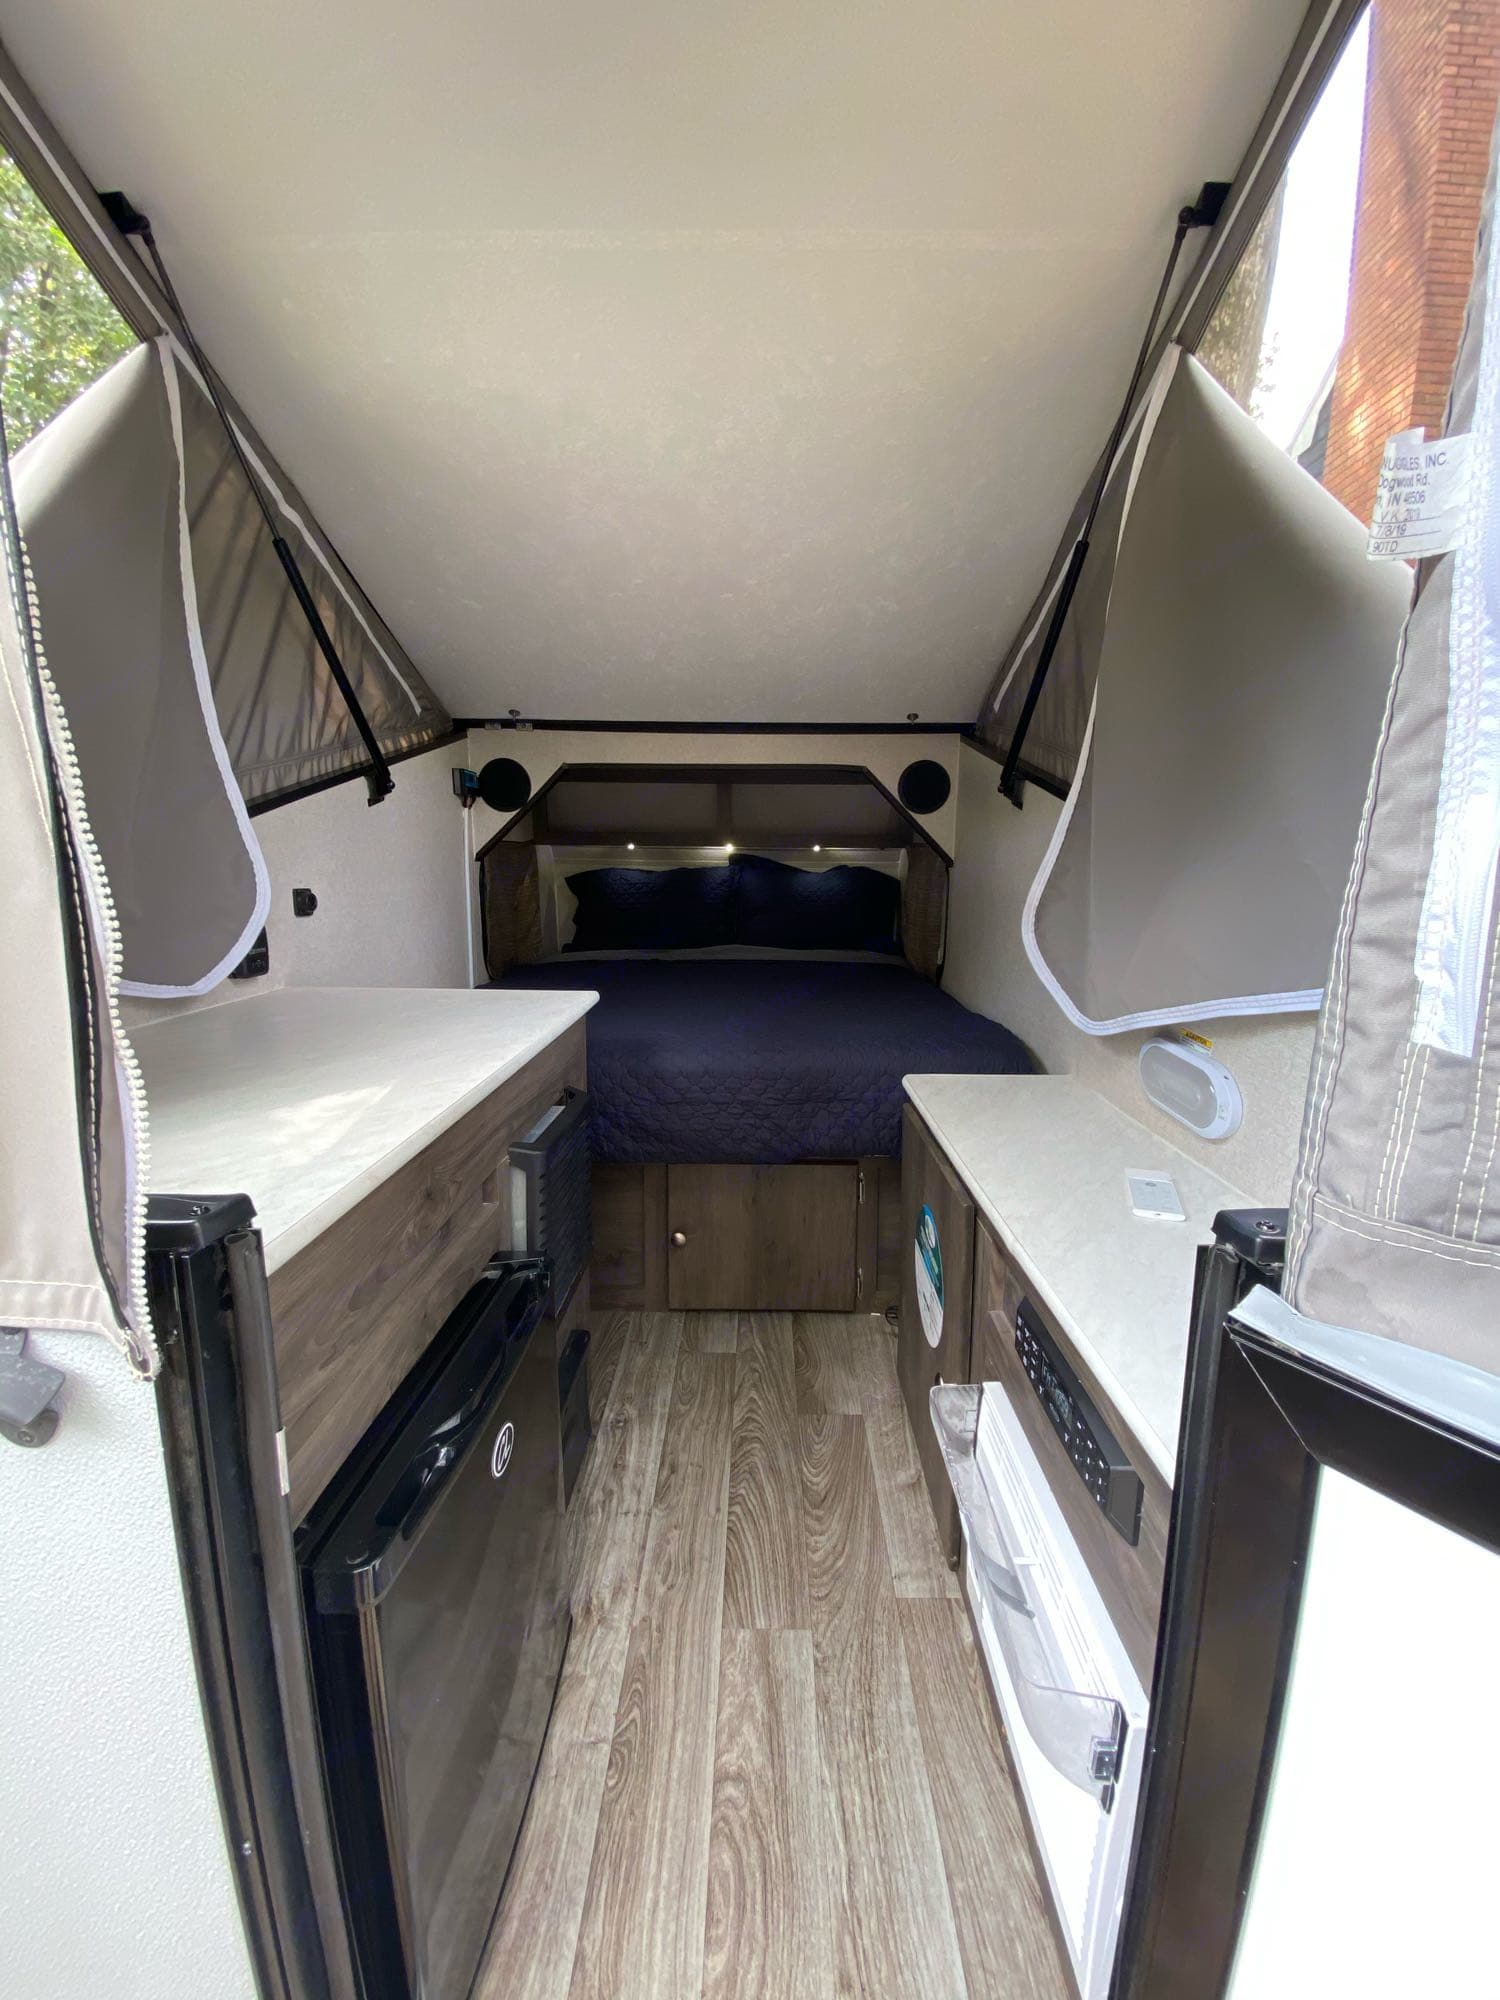 The pop up back leaves almost 7ft of vertical standing room at the tallest point! . Viking Express 9.0TD 2020